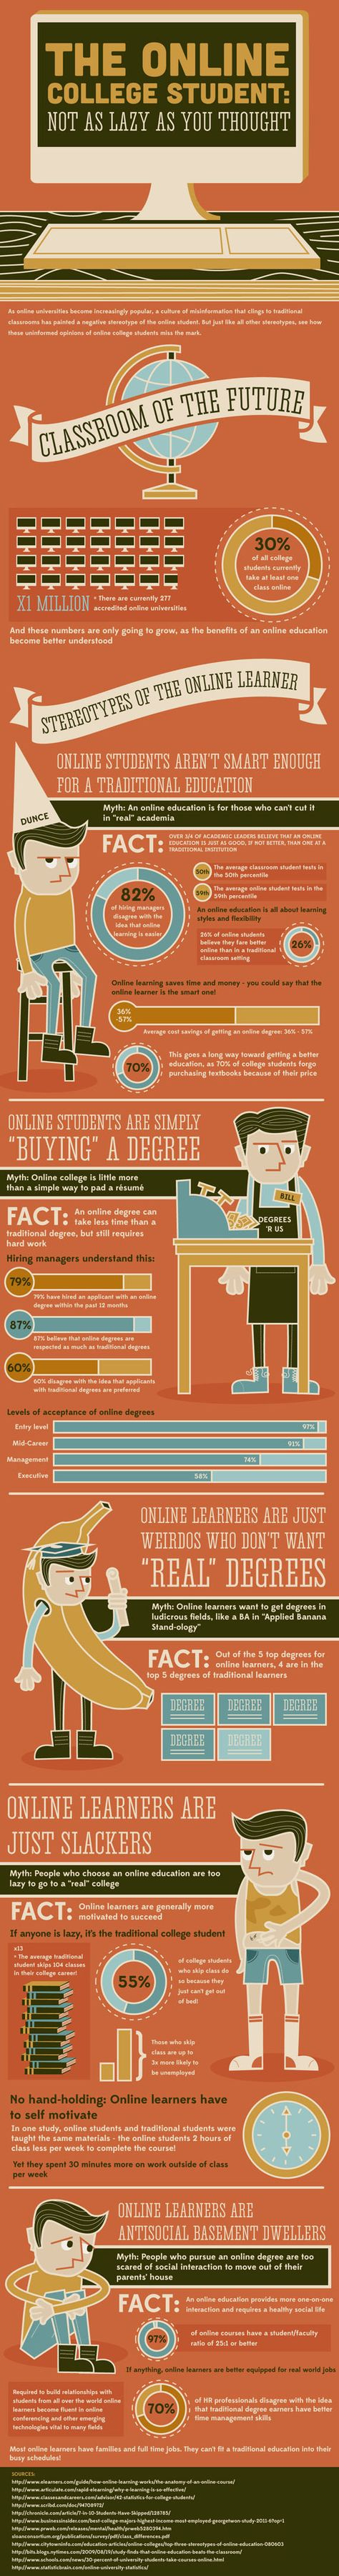 The 5 Stereotypes of the Online College Student Infographic - e-Learning Infographics